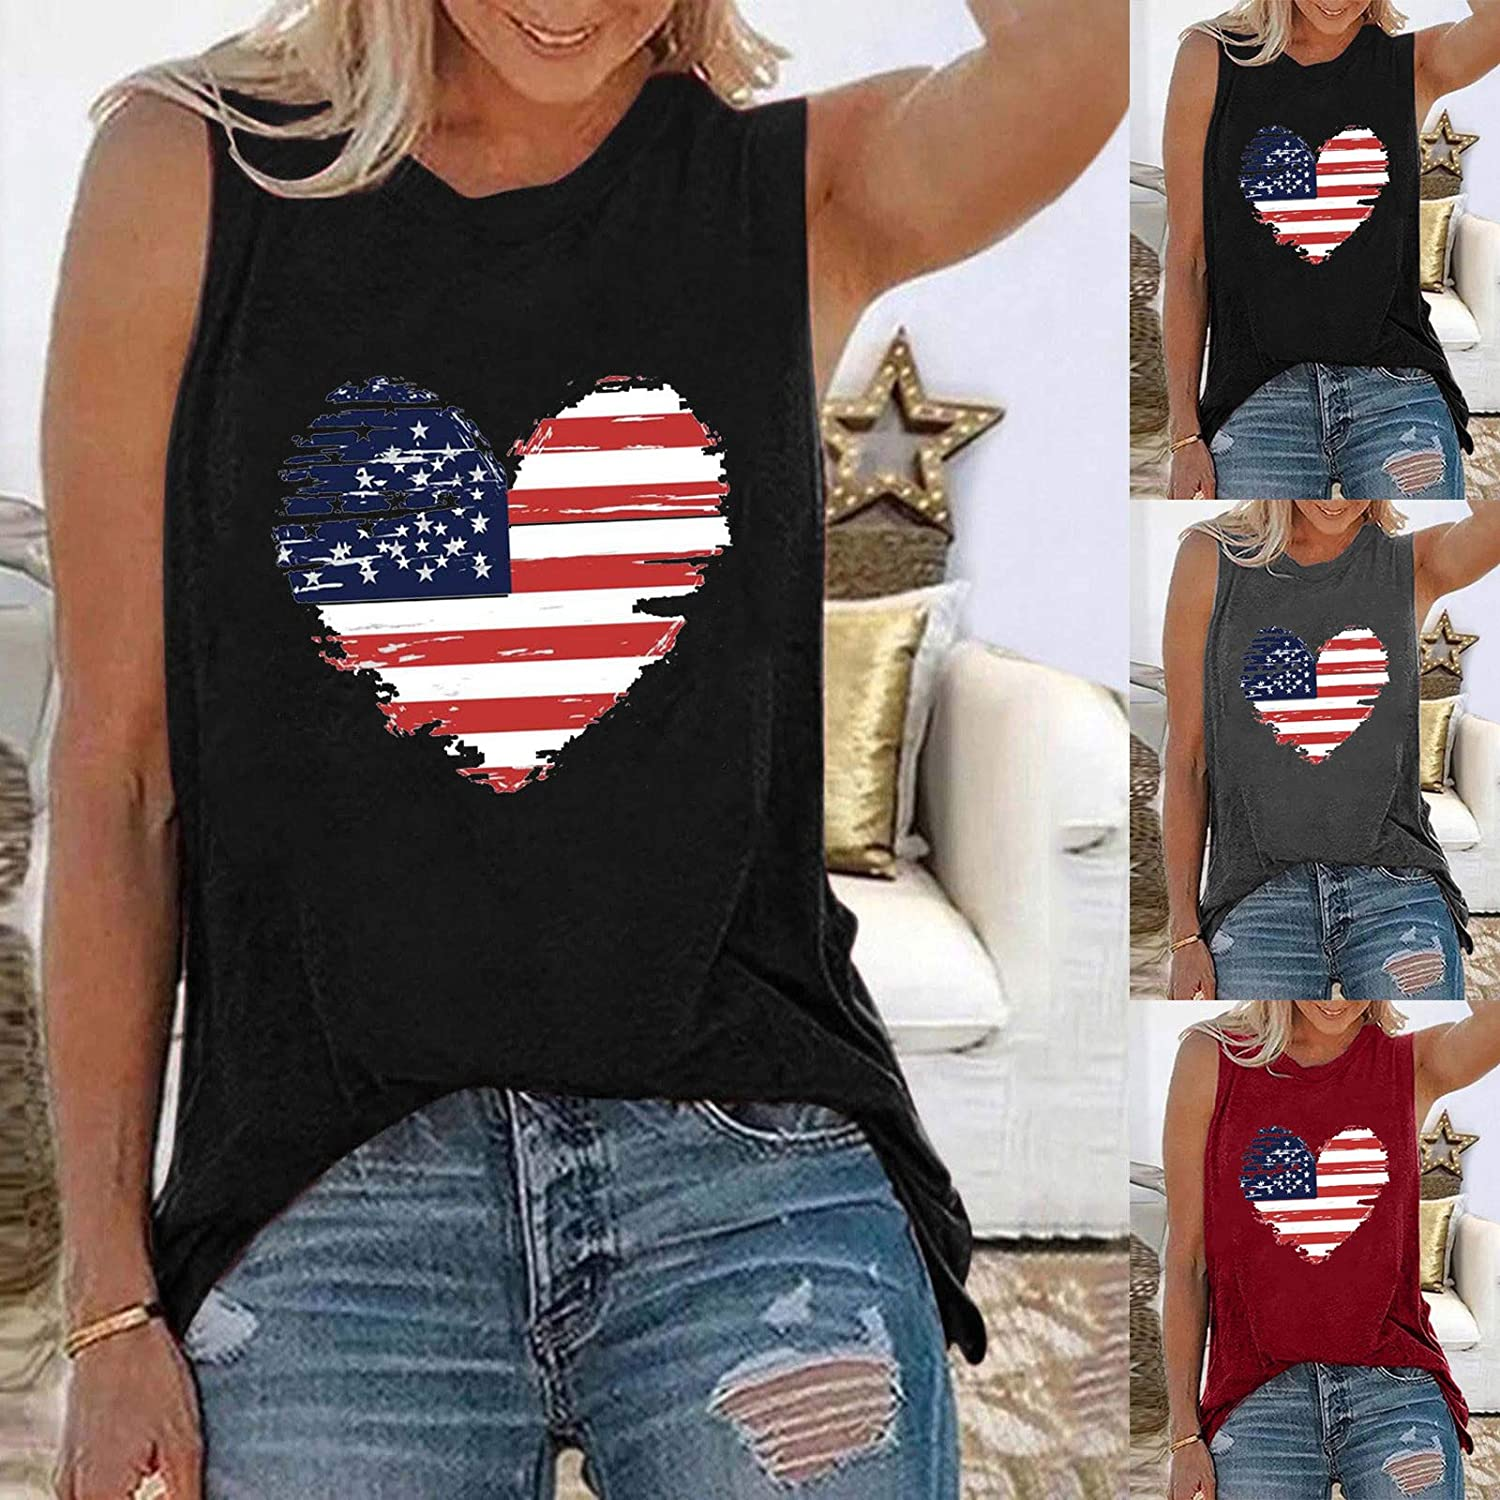 957 Women Tank Tops America Flag Printing Sleeveless Tank Independence Day T Shirts O-Neck Casual Vest